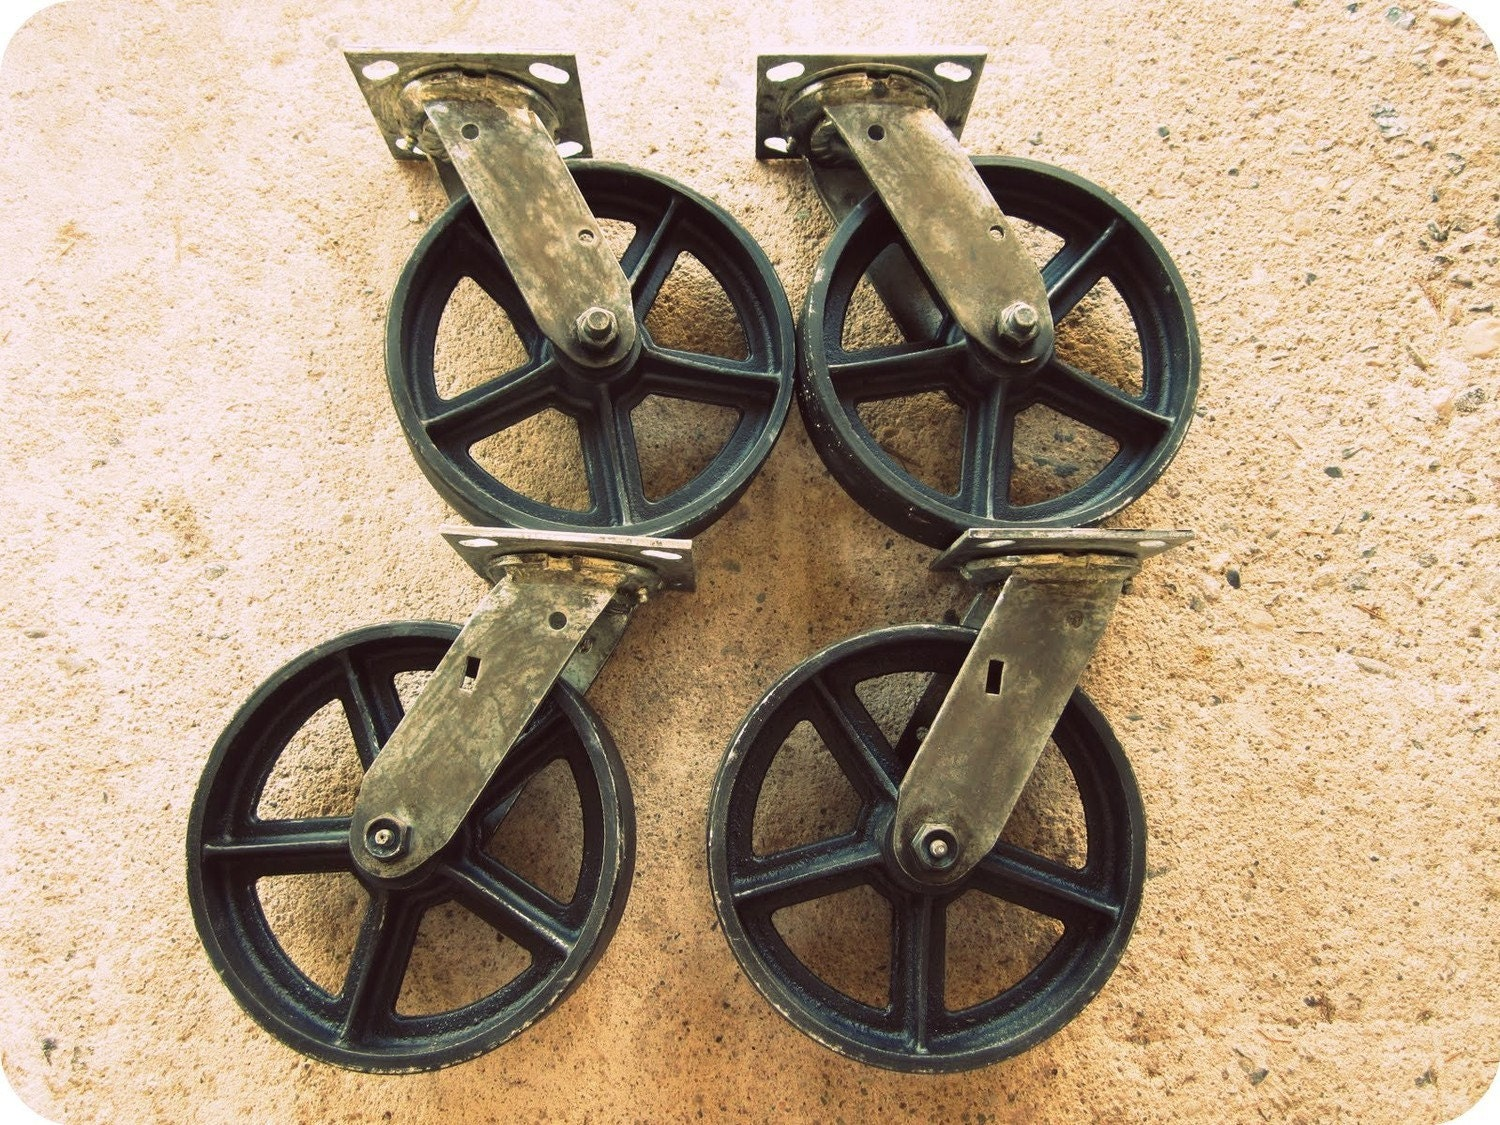 Antique Metal Furniture Casters Wheels Restoration Hardware - Antique Furniture Casters Antique Furniture